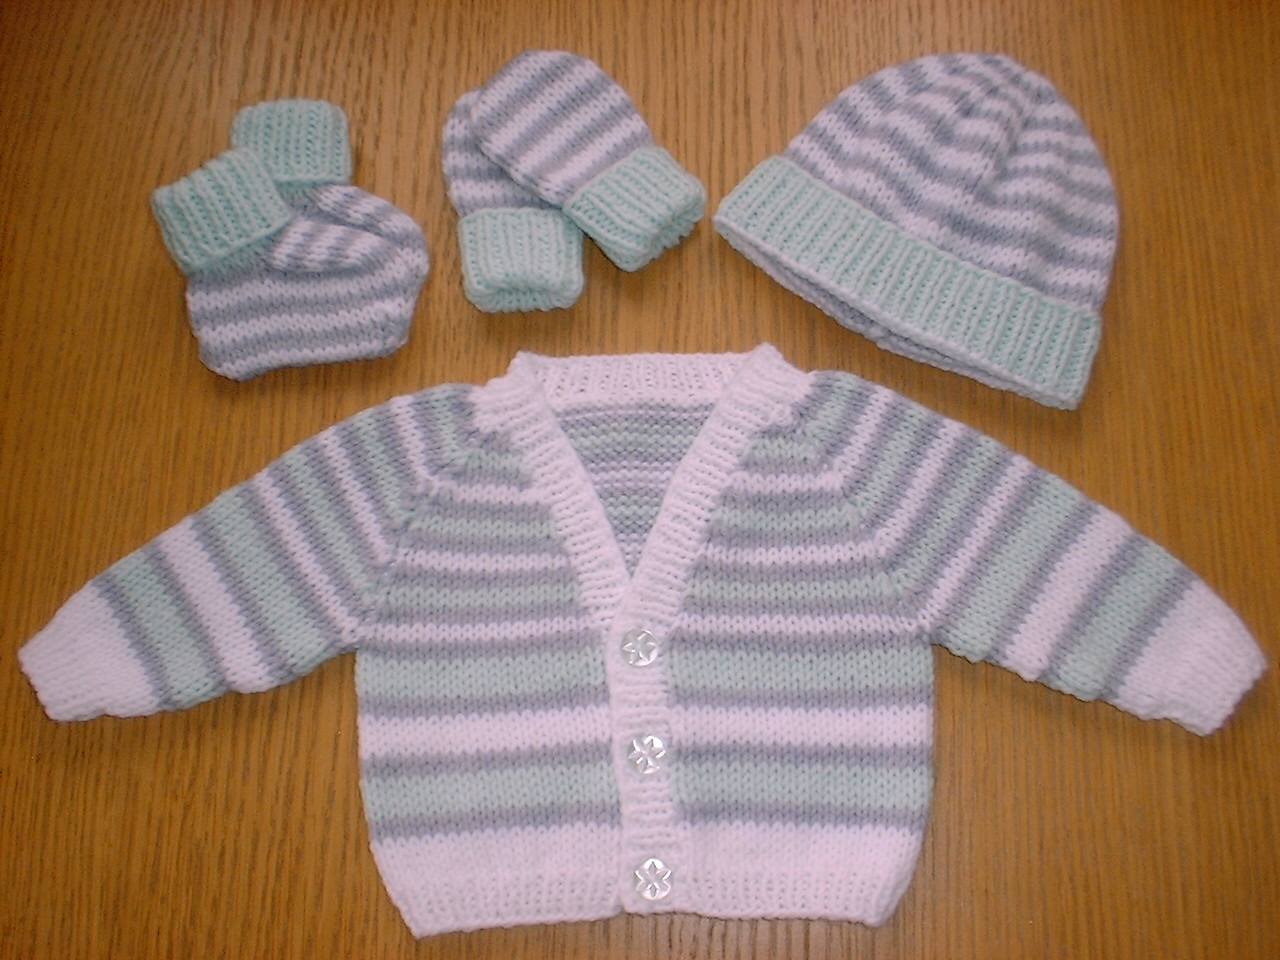 Knitting Patterns For Premature Babies : Angela Turner Designs